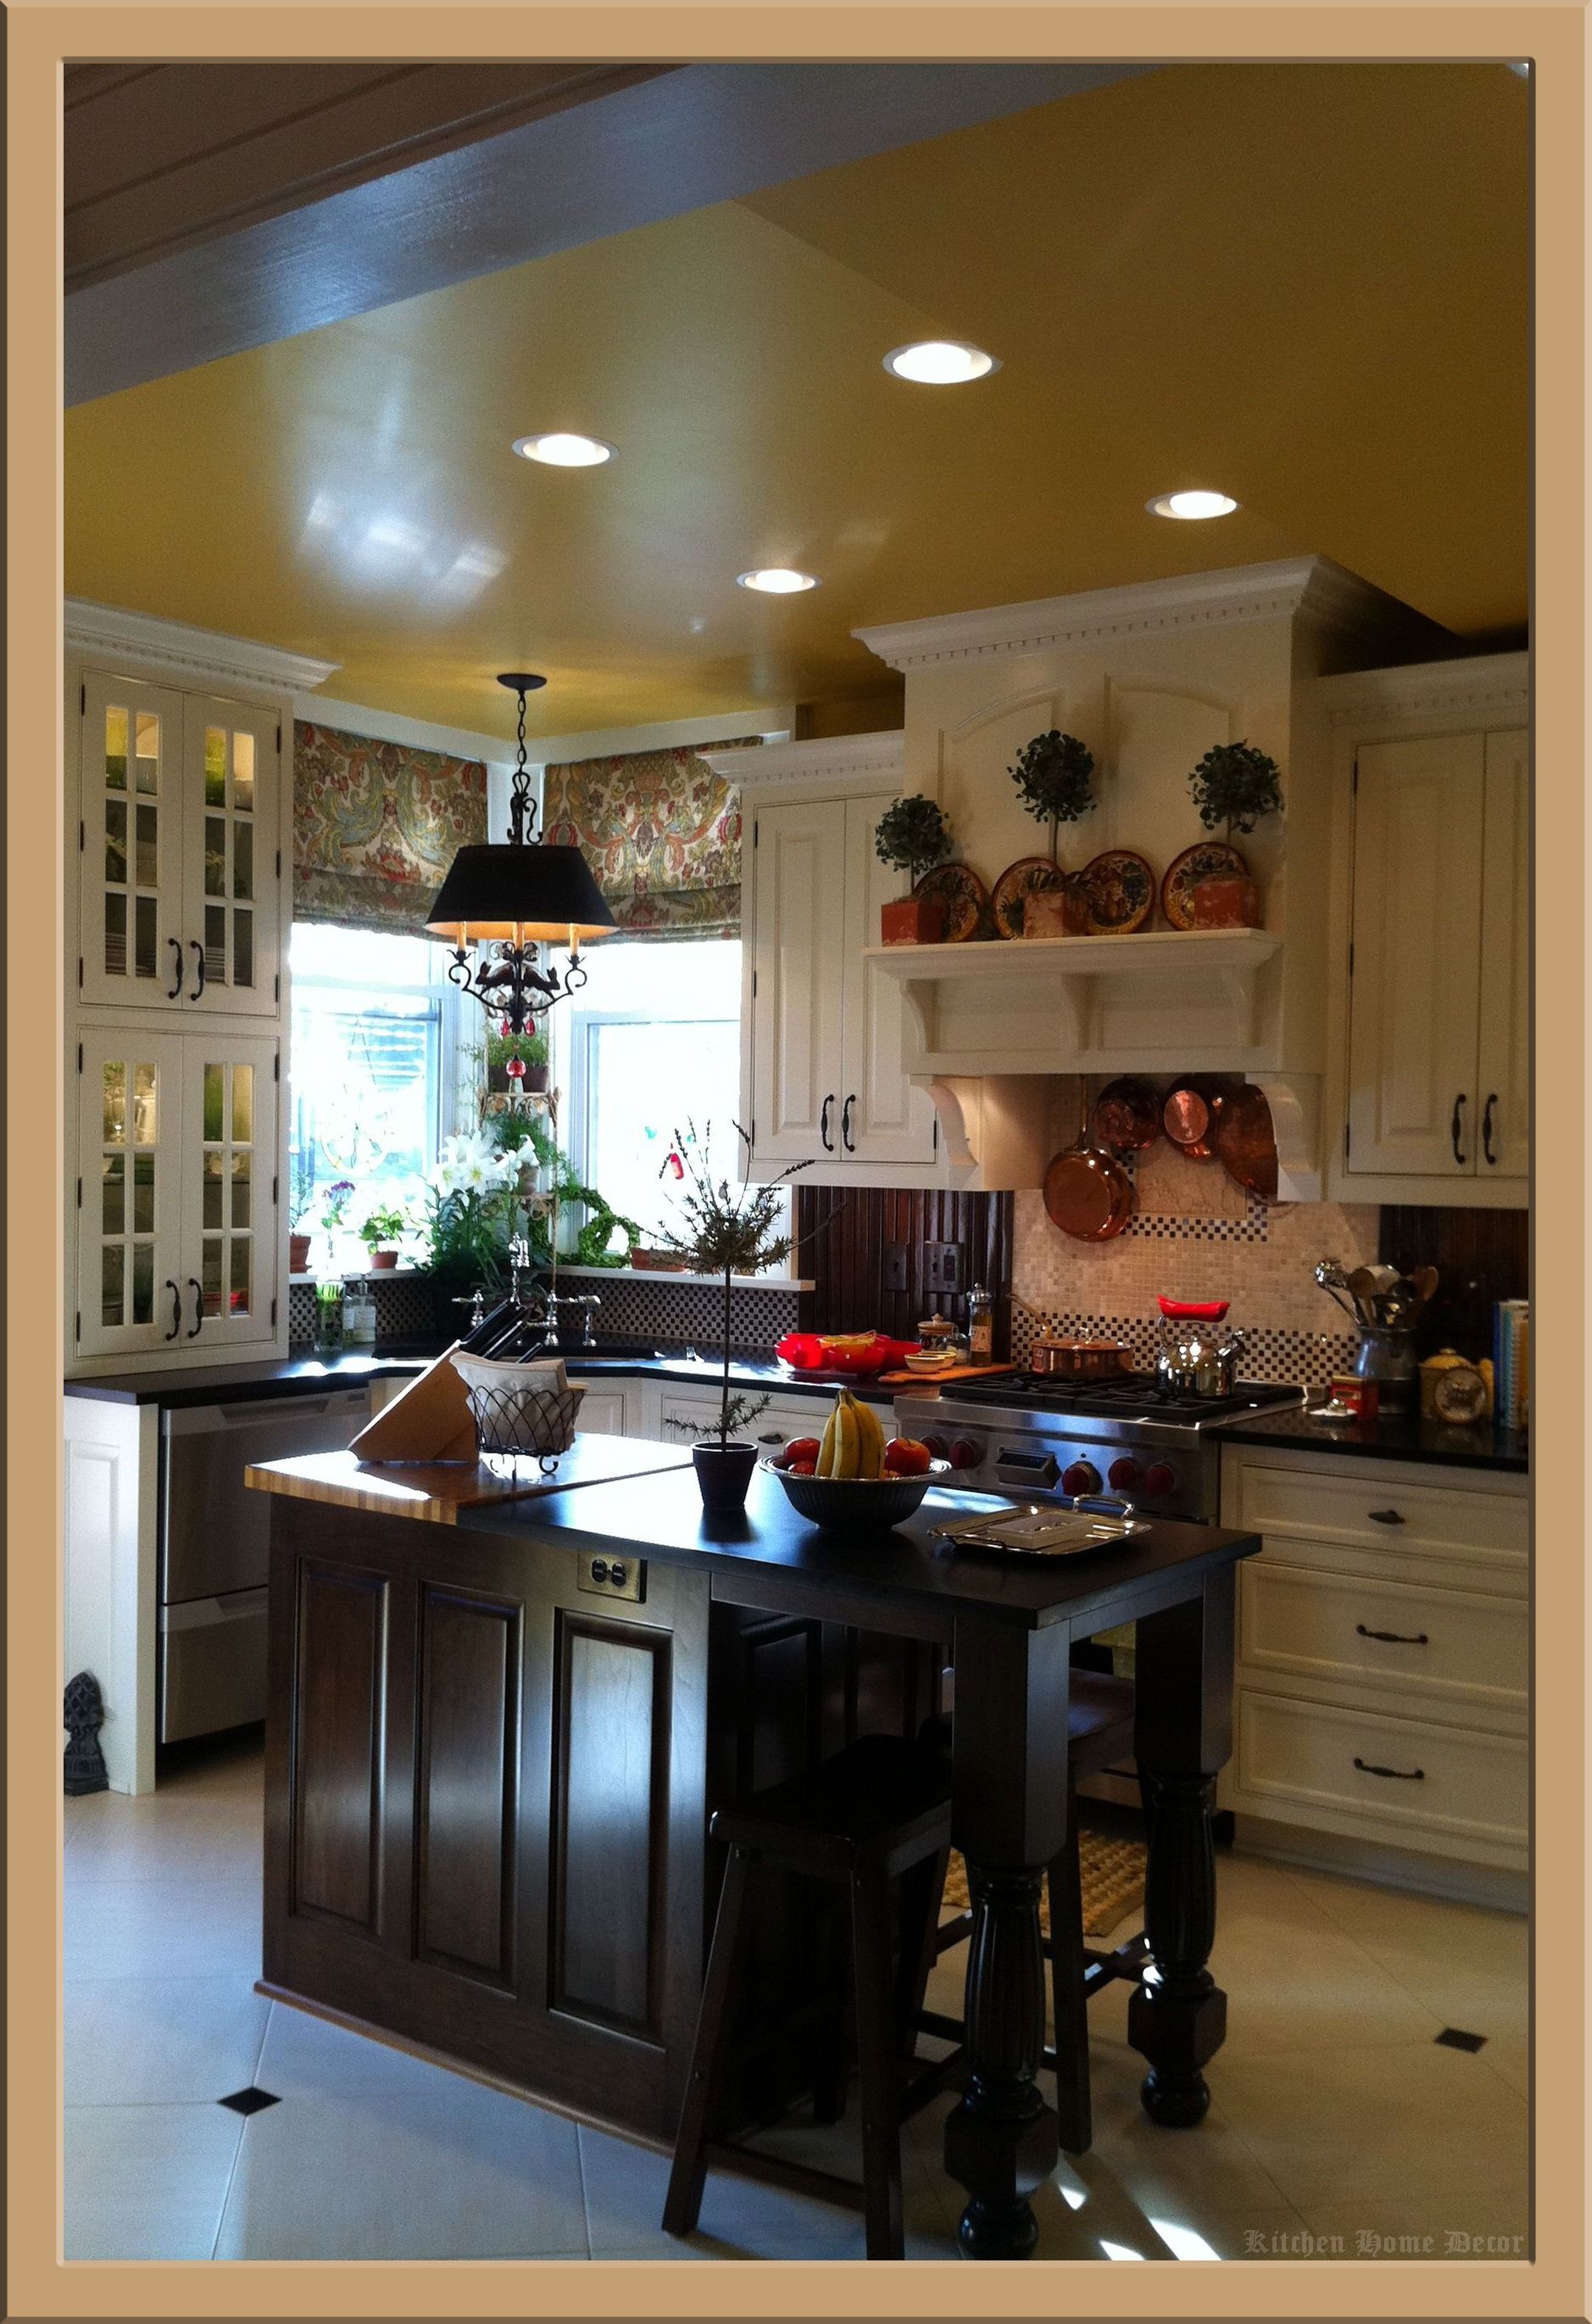 Want To Have A More Appealing Kitchen Decor? Read This!